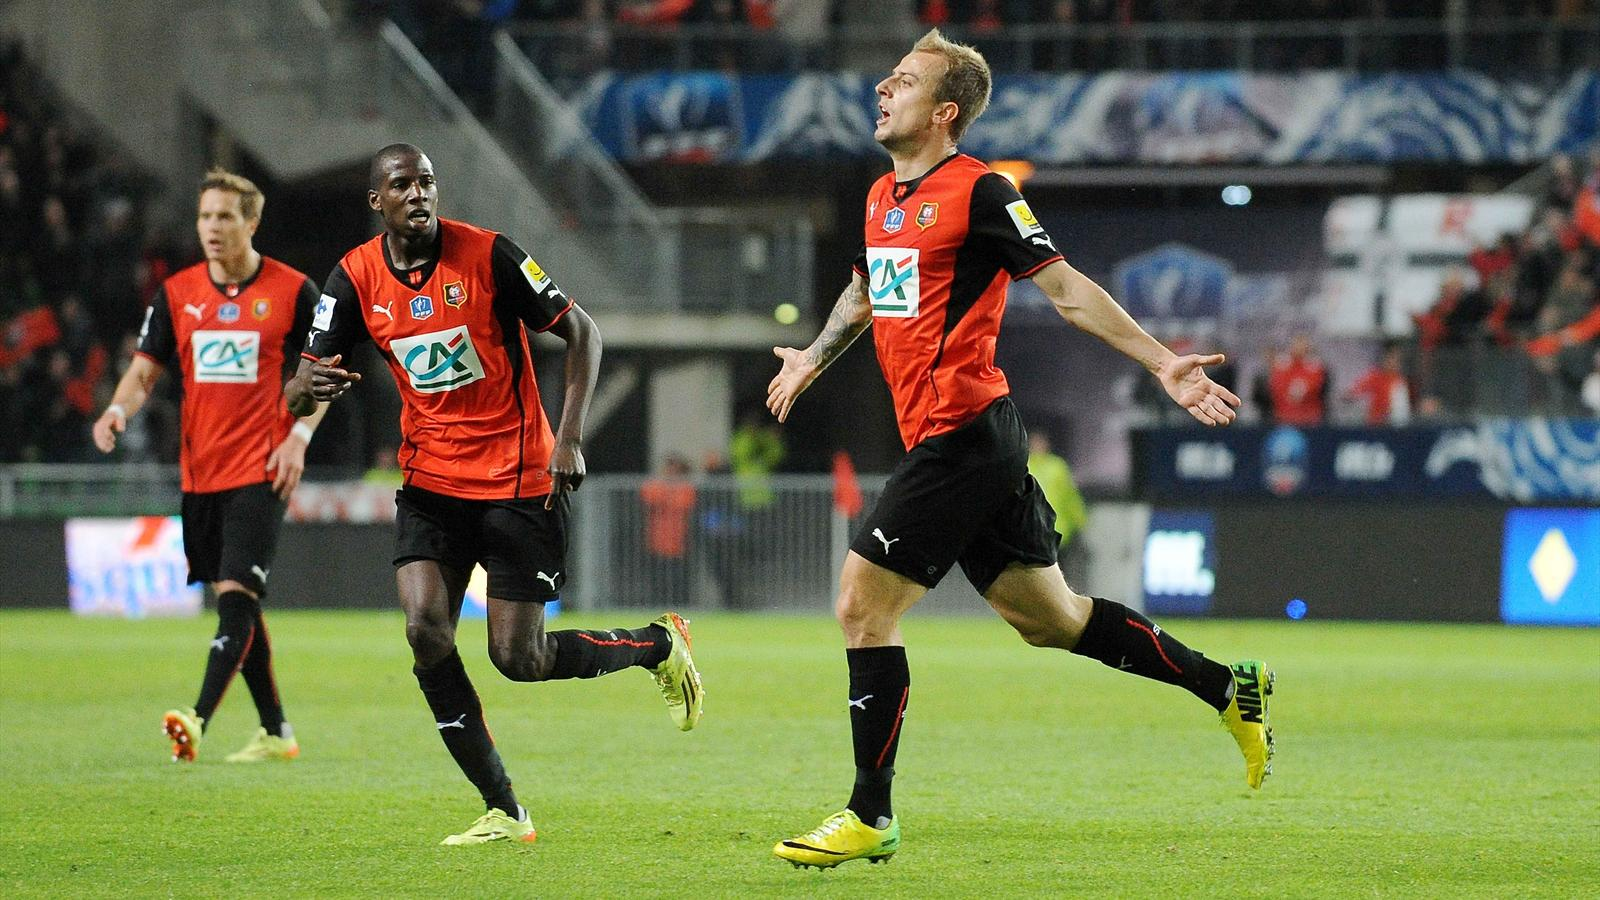 Match Stade Rennais vs FC Lorient en direct live streaming